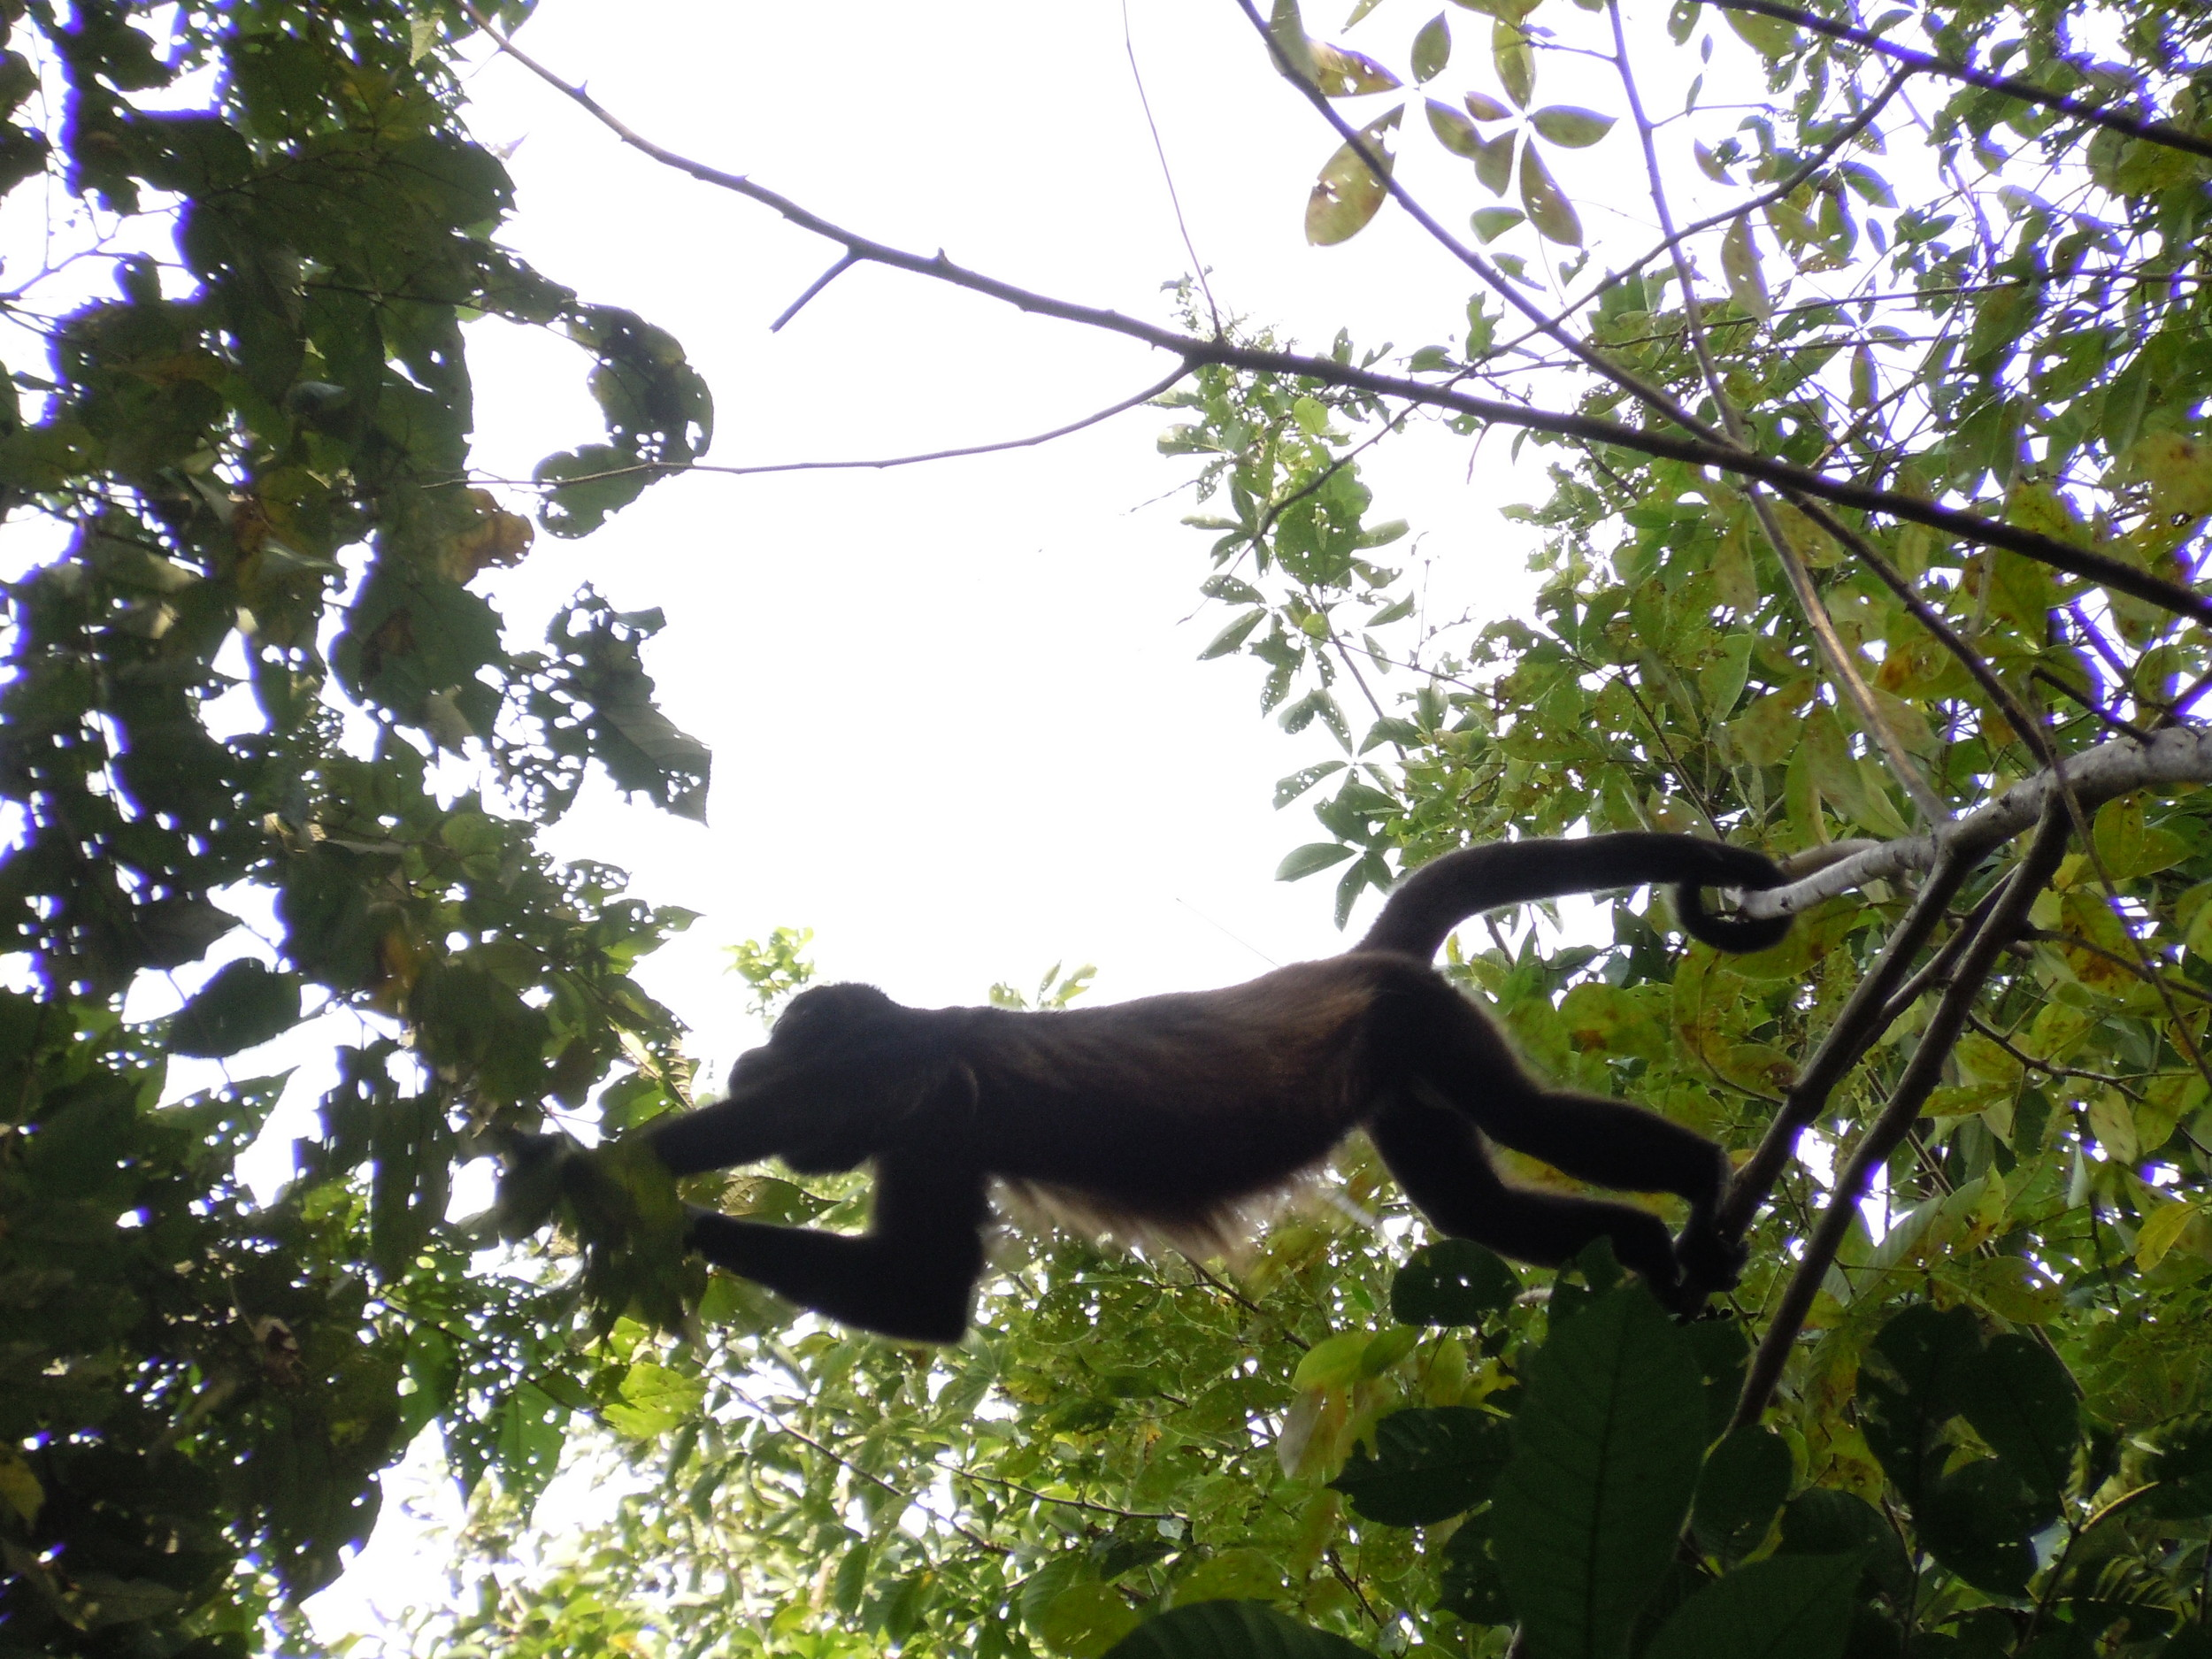 One of the many howler monkeys that hang around.